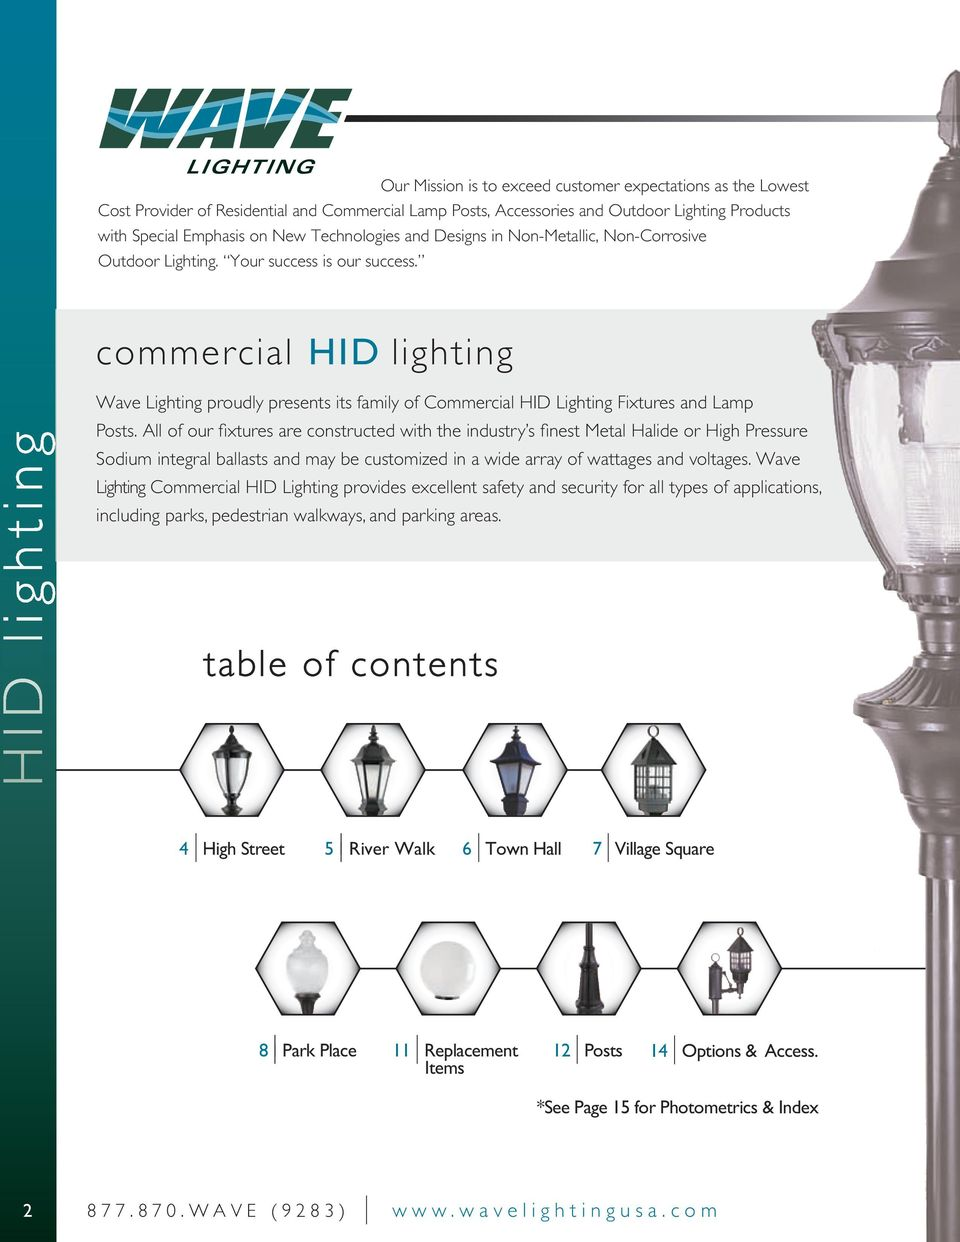 commercial HID lighting Wave Lighting proudly presents its family of Commercial HID Lighting Fixtures and Lamp Posts.